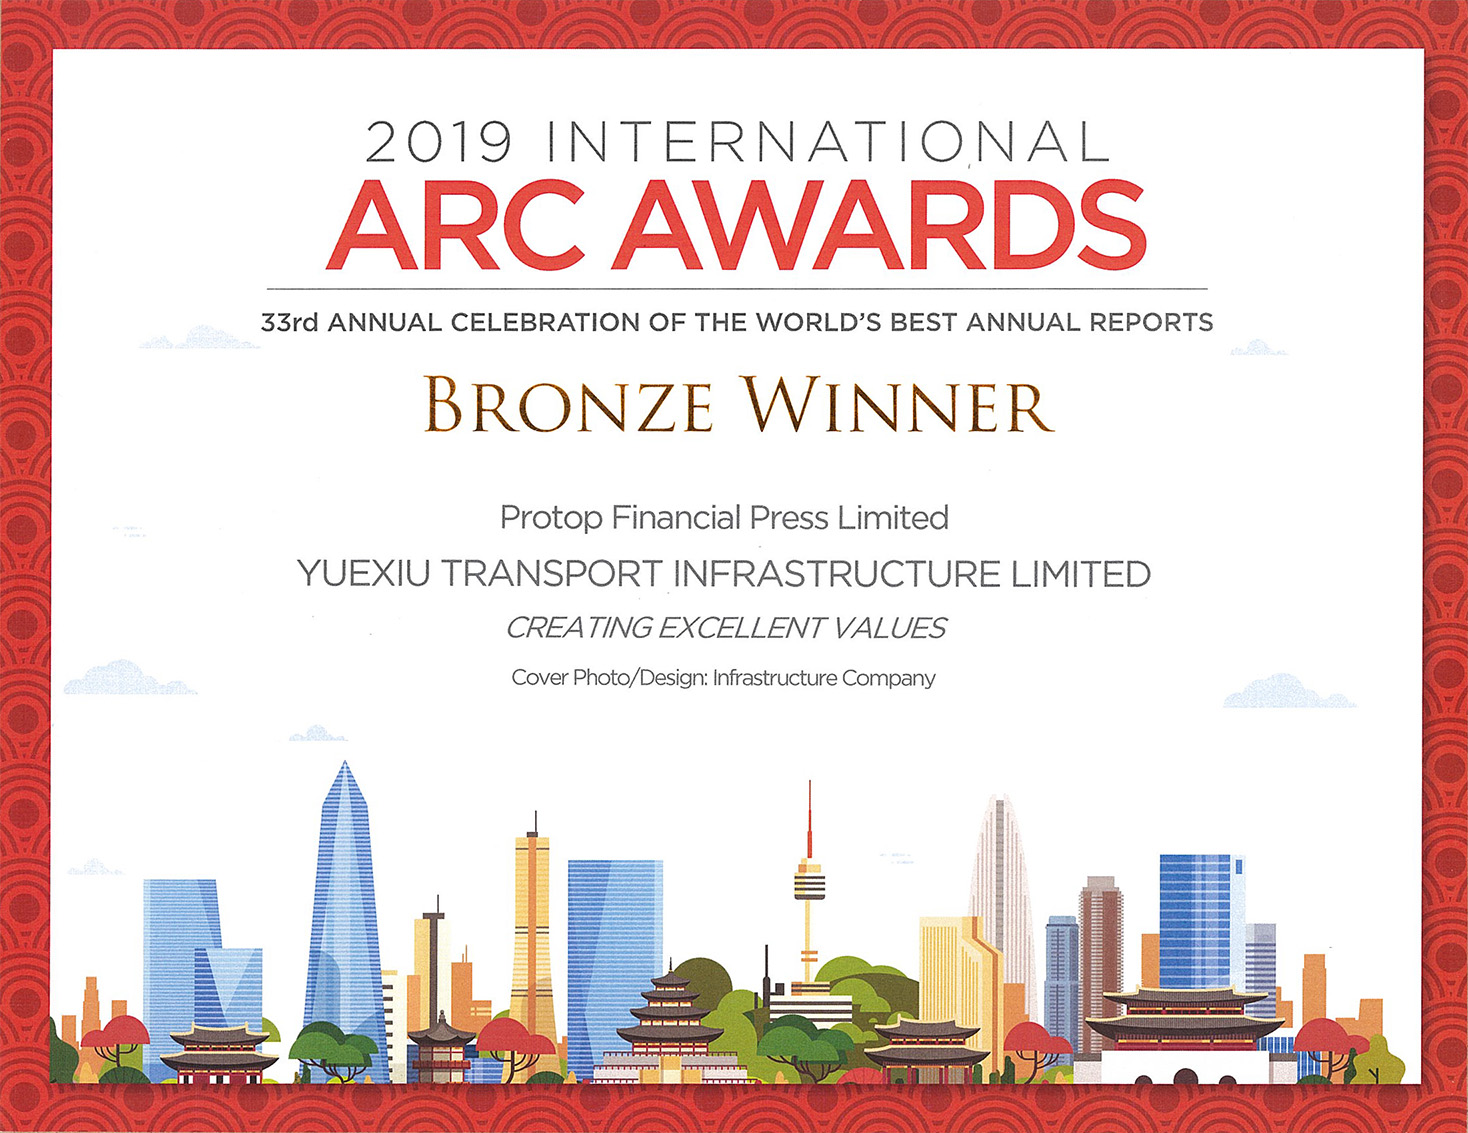 YUEXIU TRANSPORT INFRASTRUCTURE LIMITED – 2019 ARC AWARDS BRONZE WINNER Cover Photo/Design: Infrastructure Company